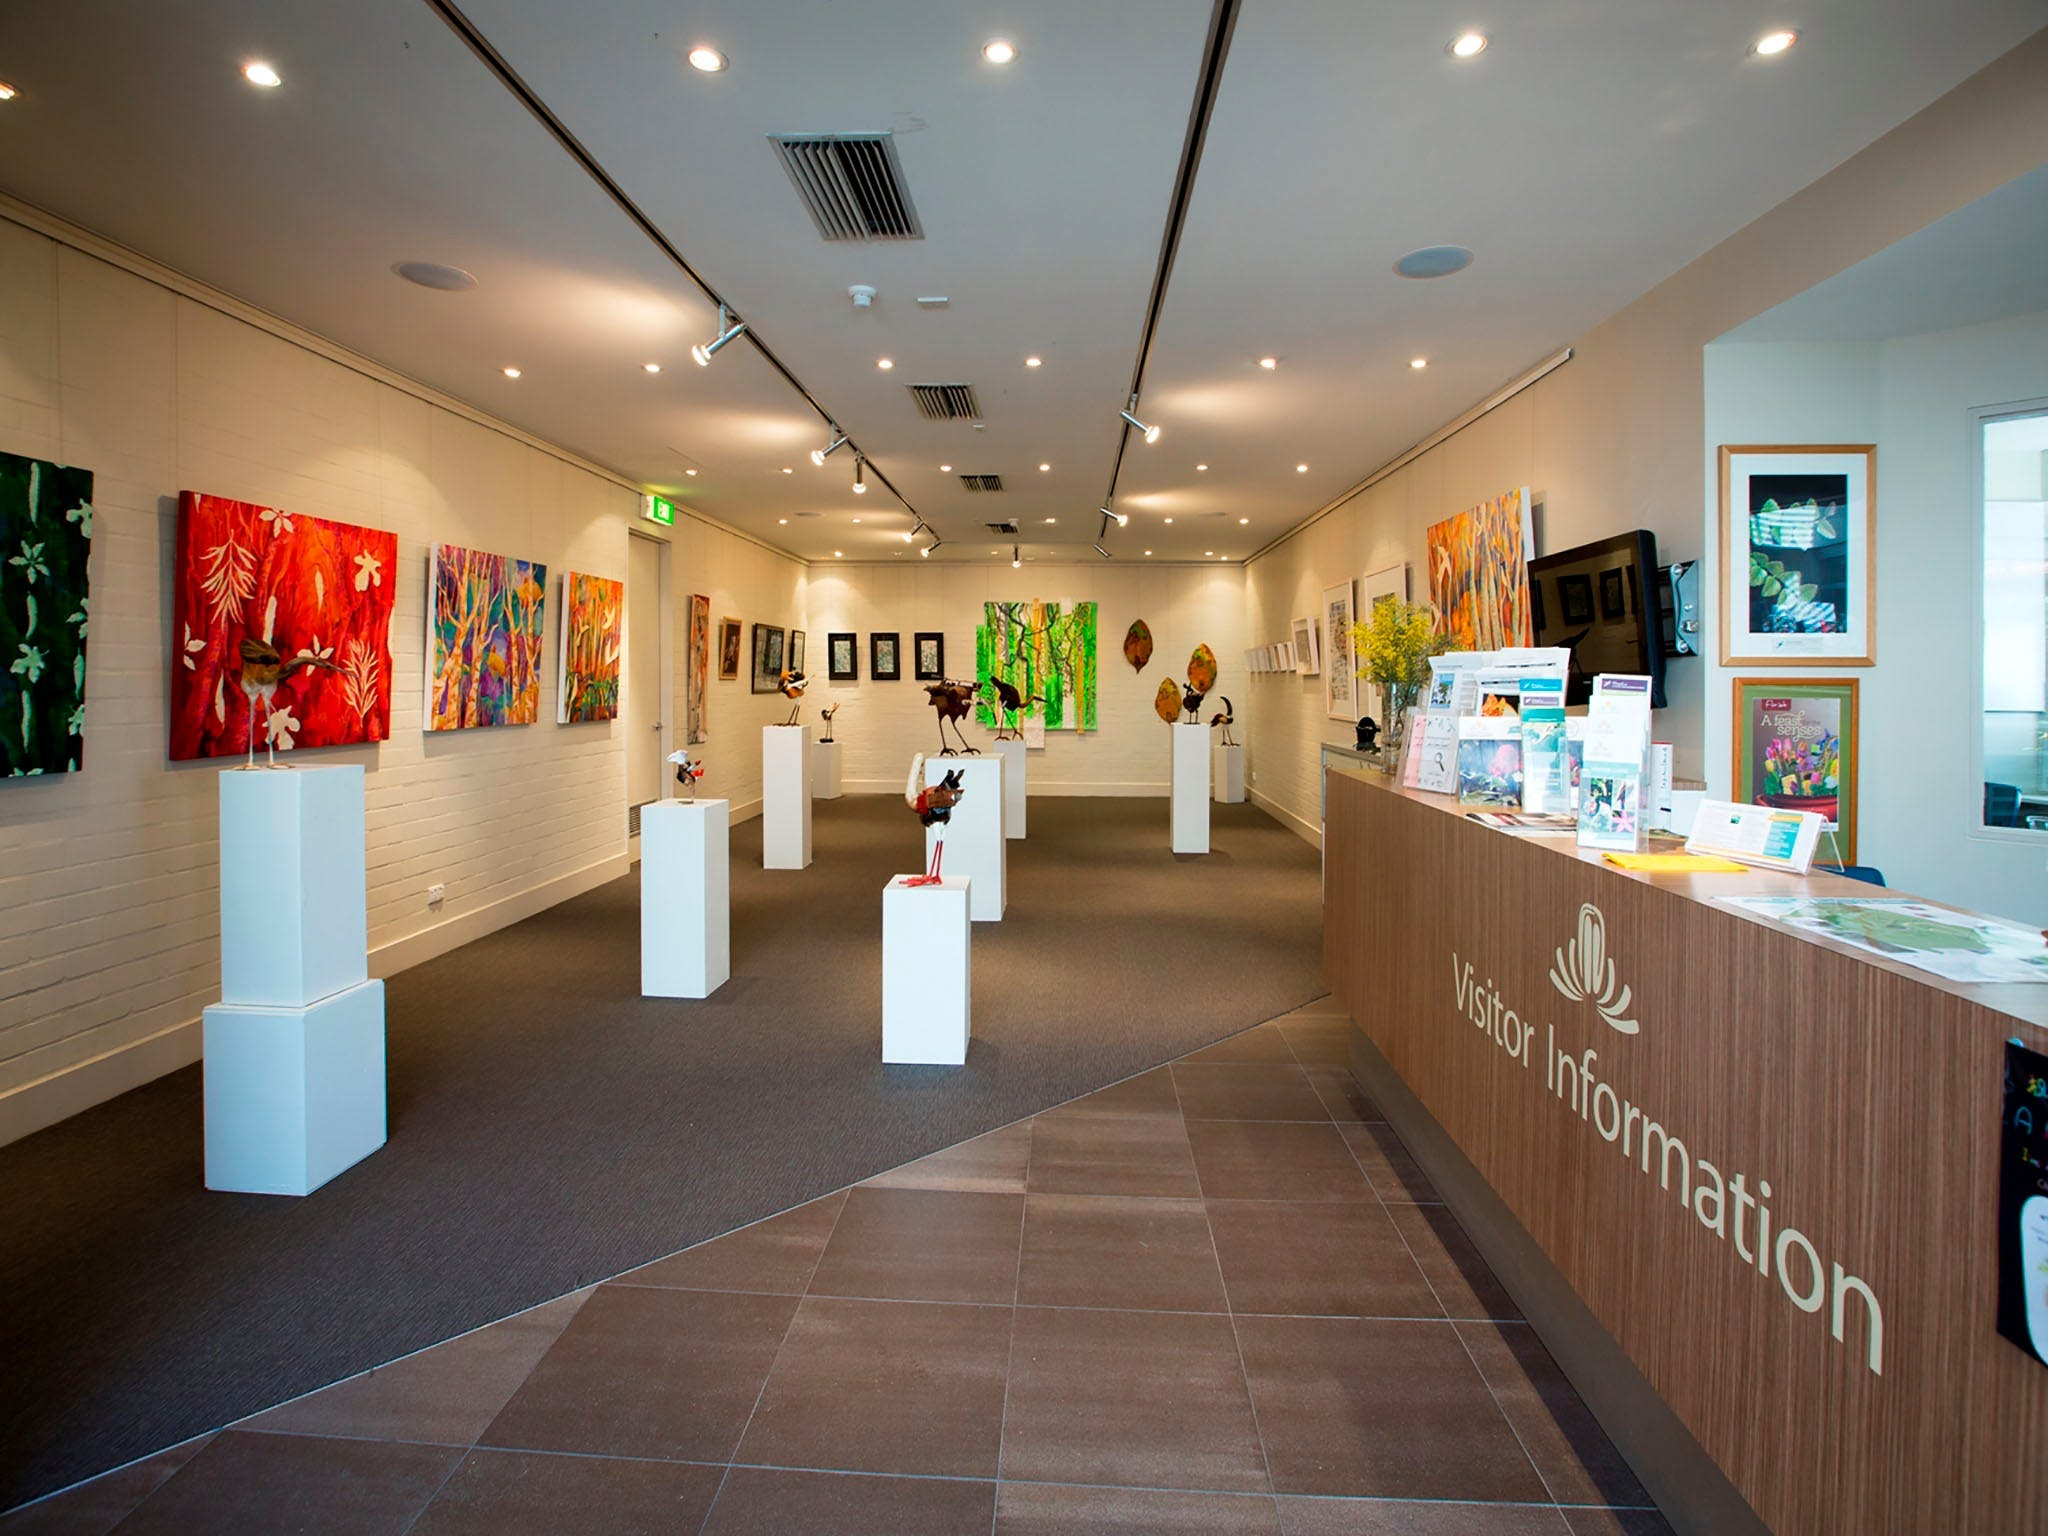 Australian National Botanic Gardens Visitor Centre Gallery - Tourism Brisbane